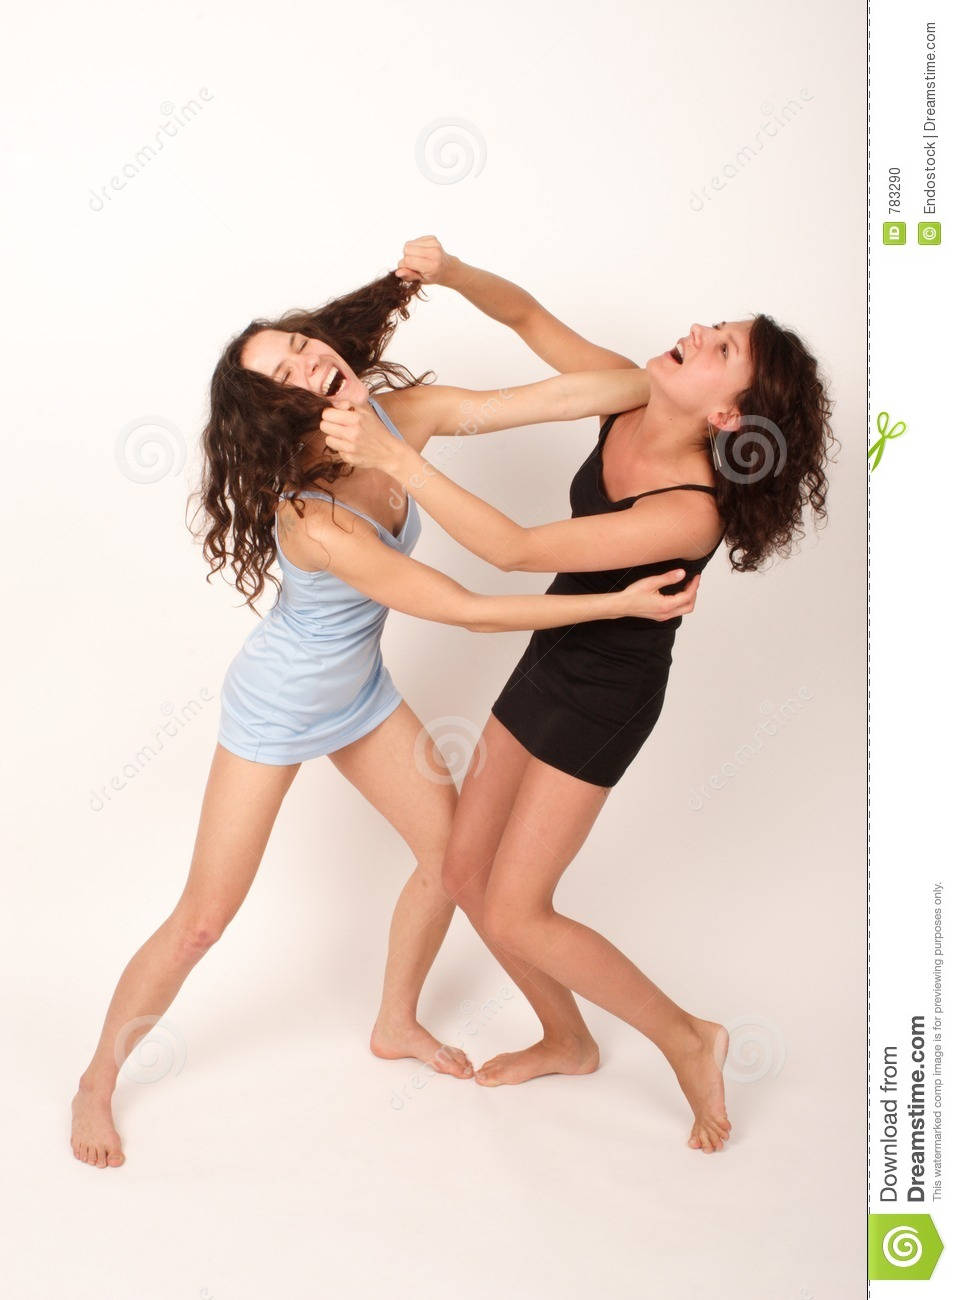 Two girl fighting